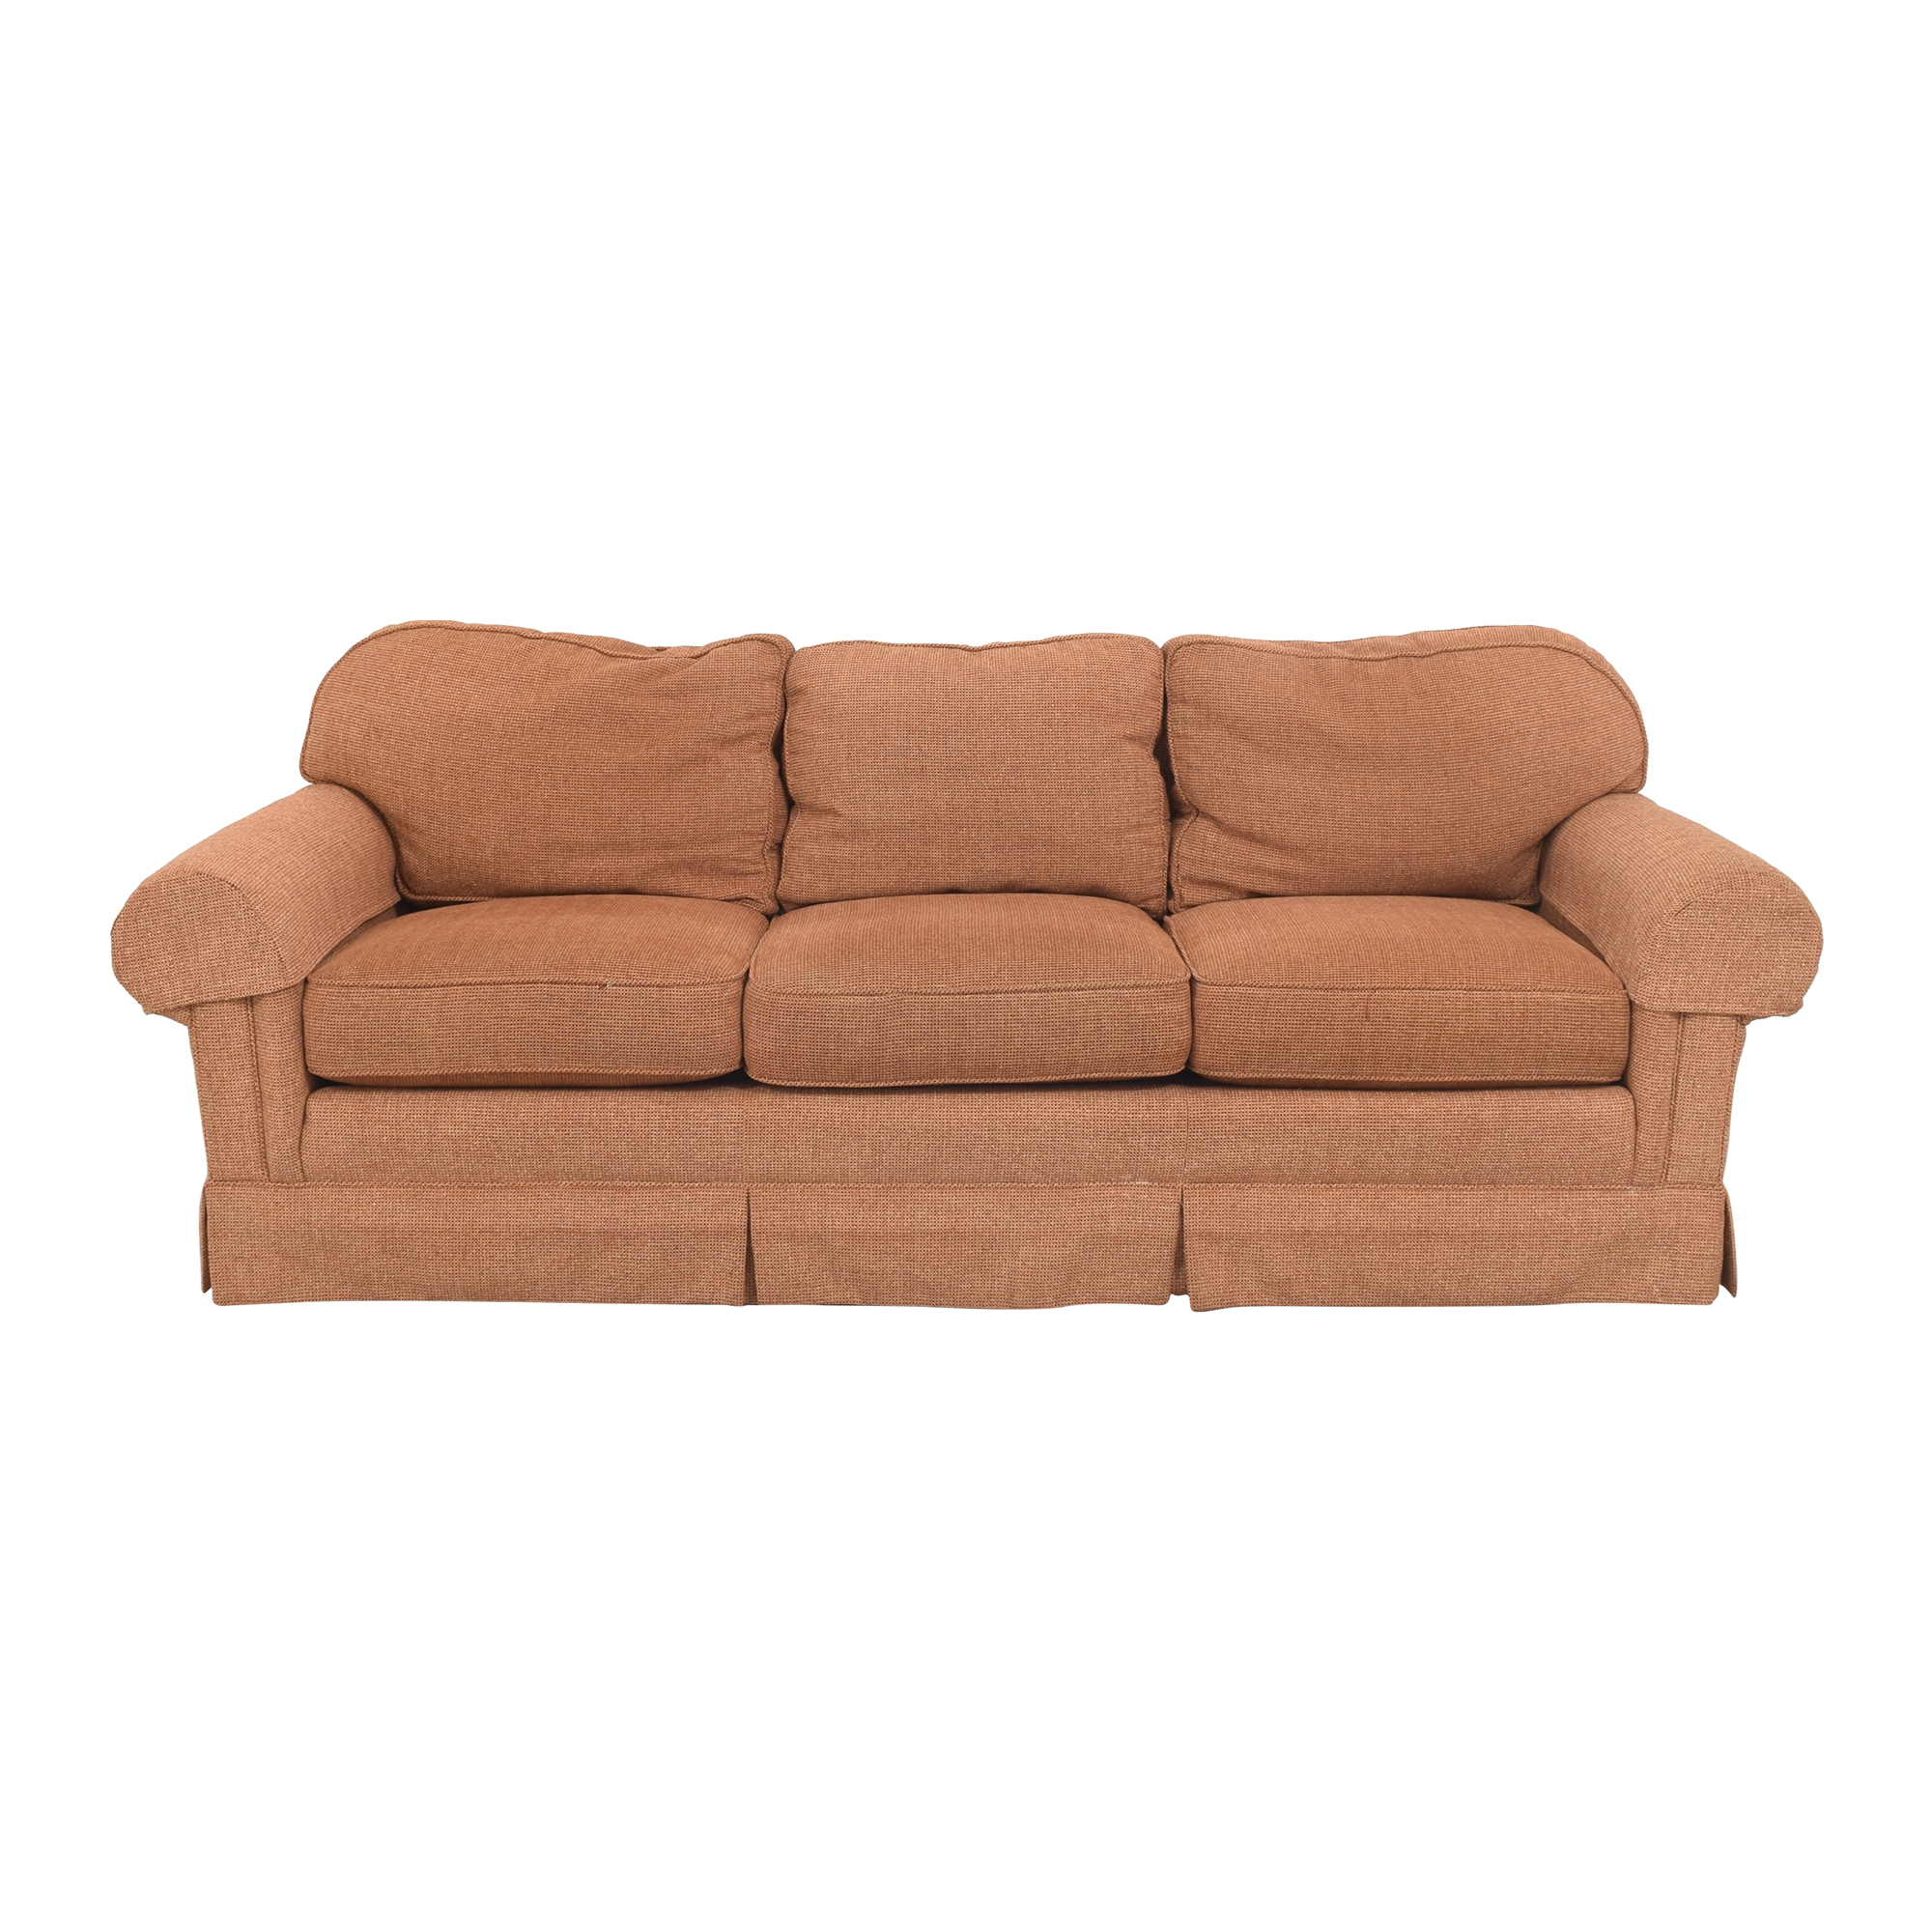 buy Calico Three Cushion Sofa Calico Classic Sofas